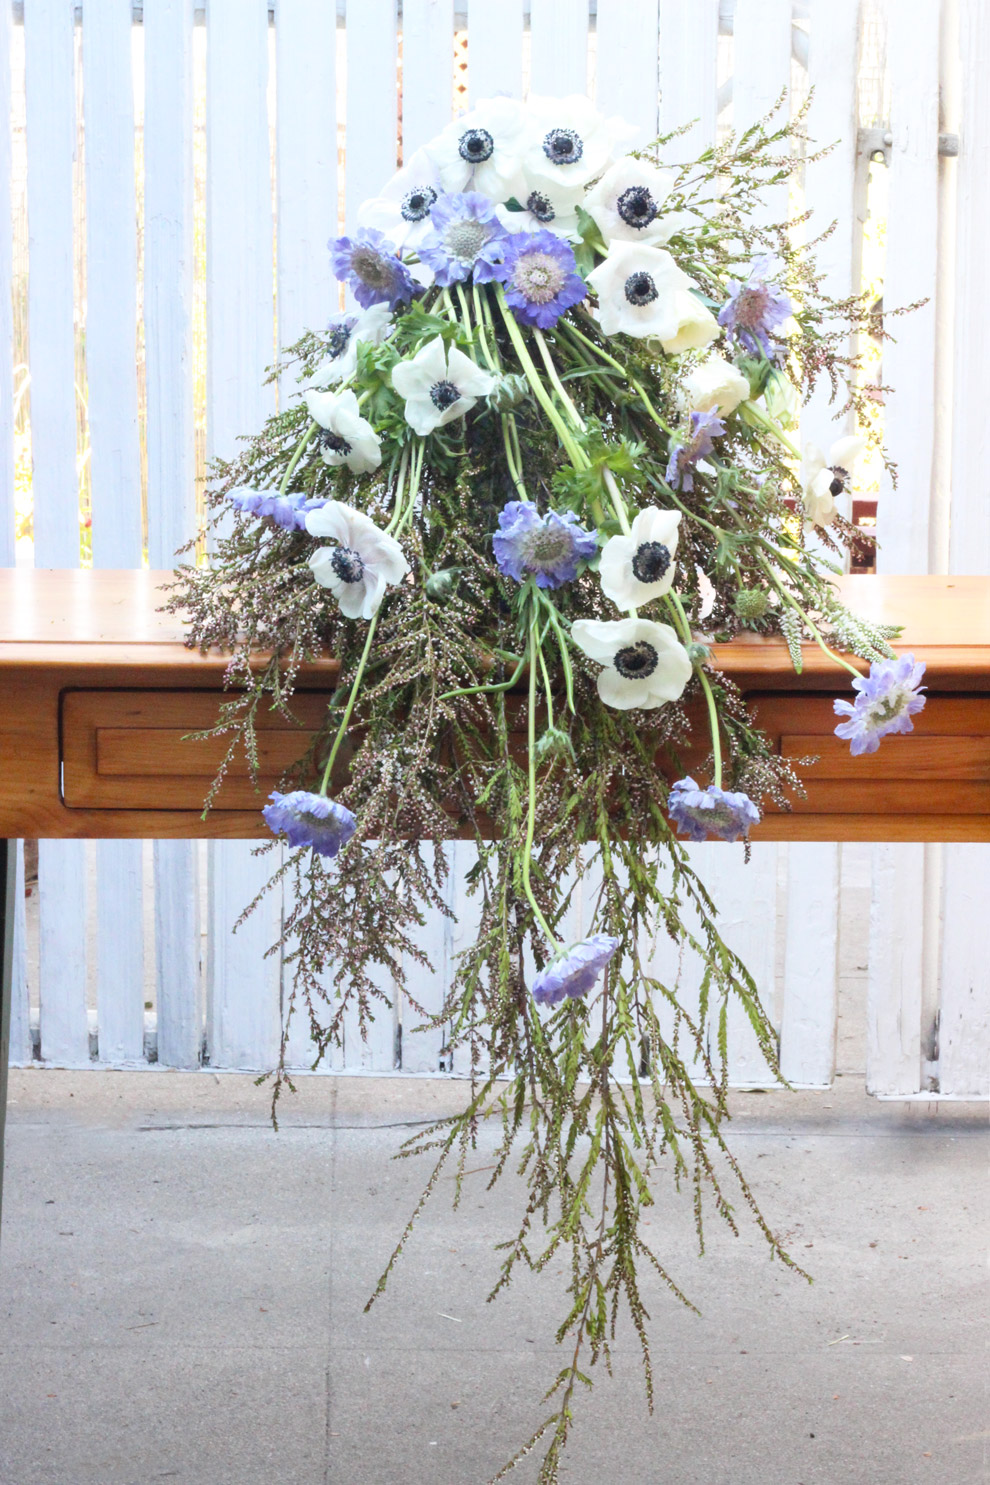 Add Anemones and blue Scabiosa down the front.